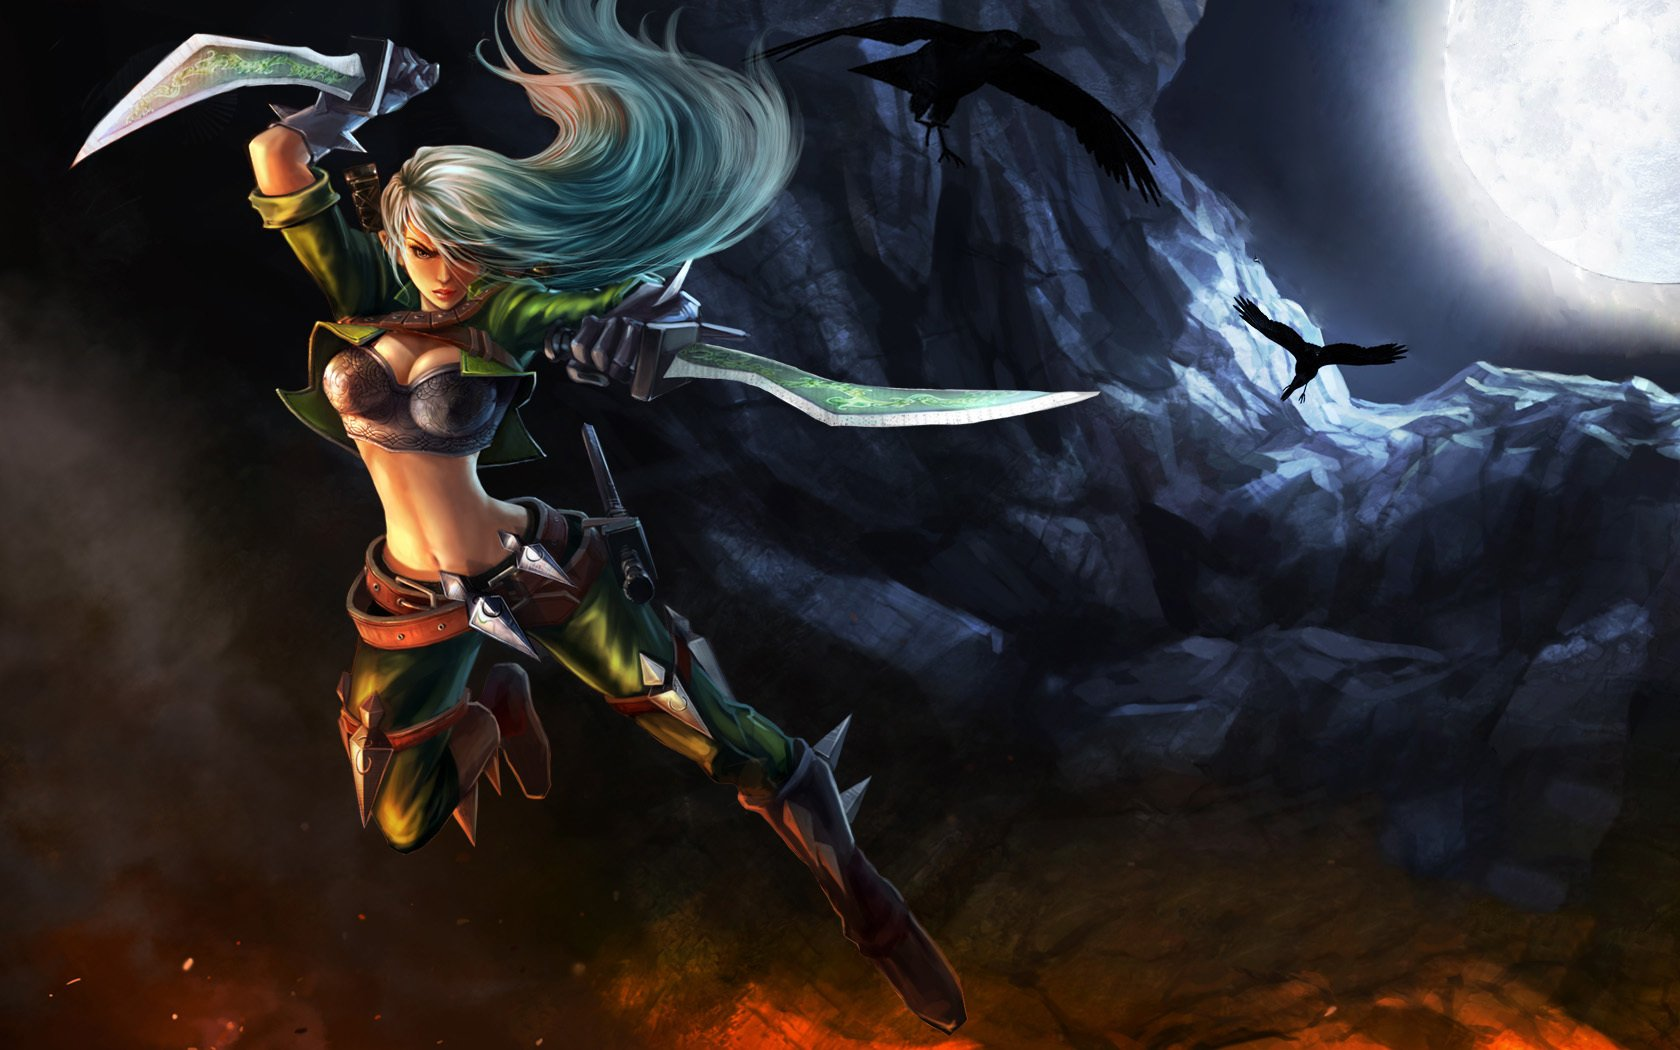 fantasy League of Legends weapons artwork Katarina the Sinister Blade daggers Riot Games